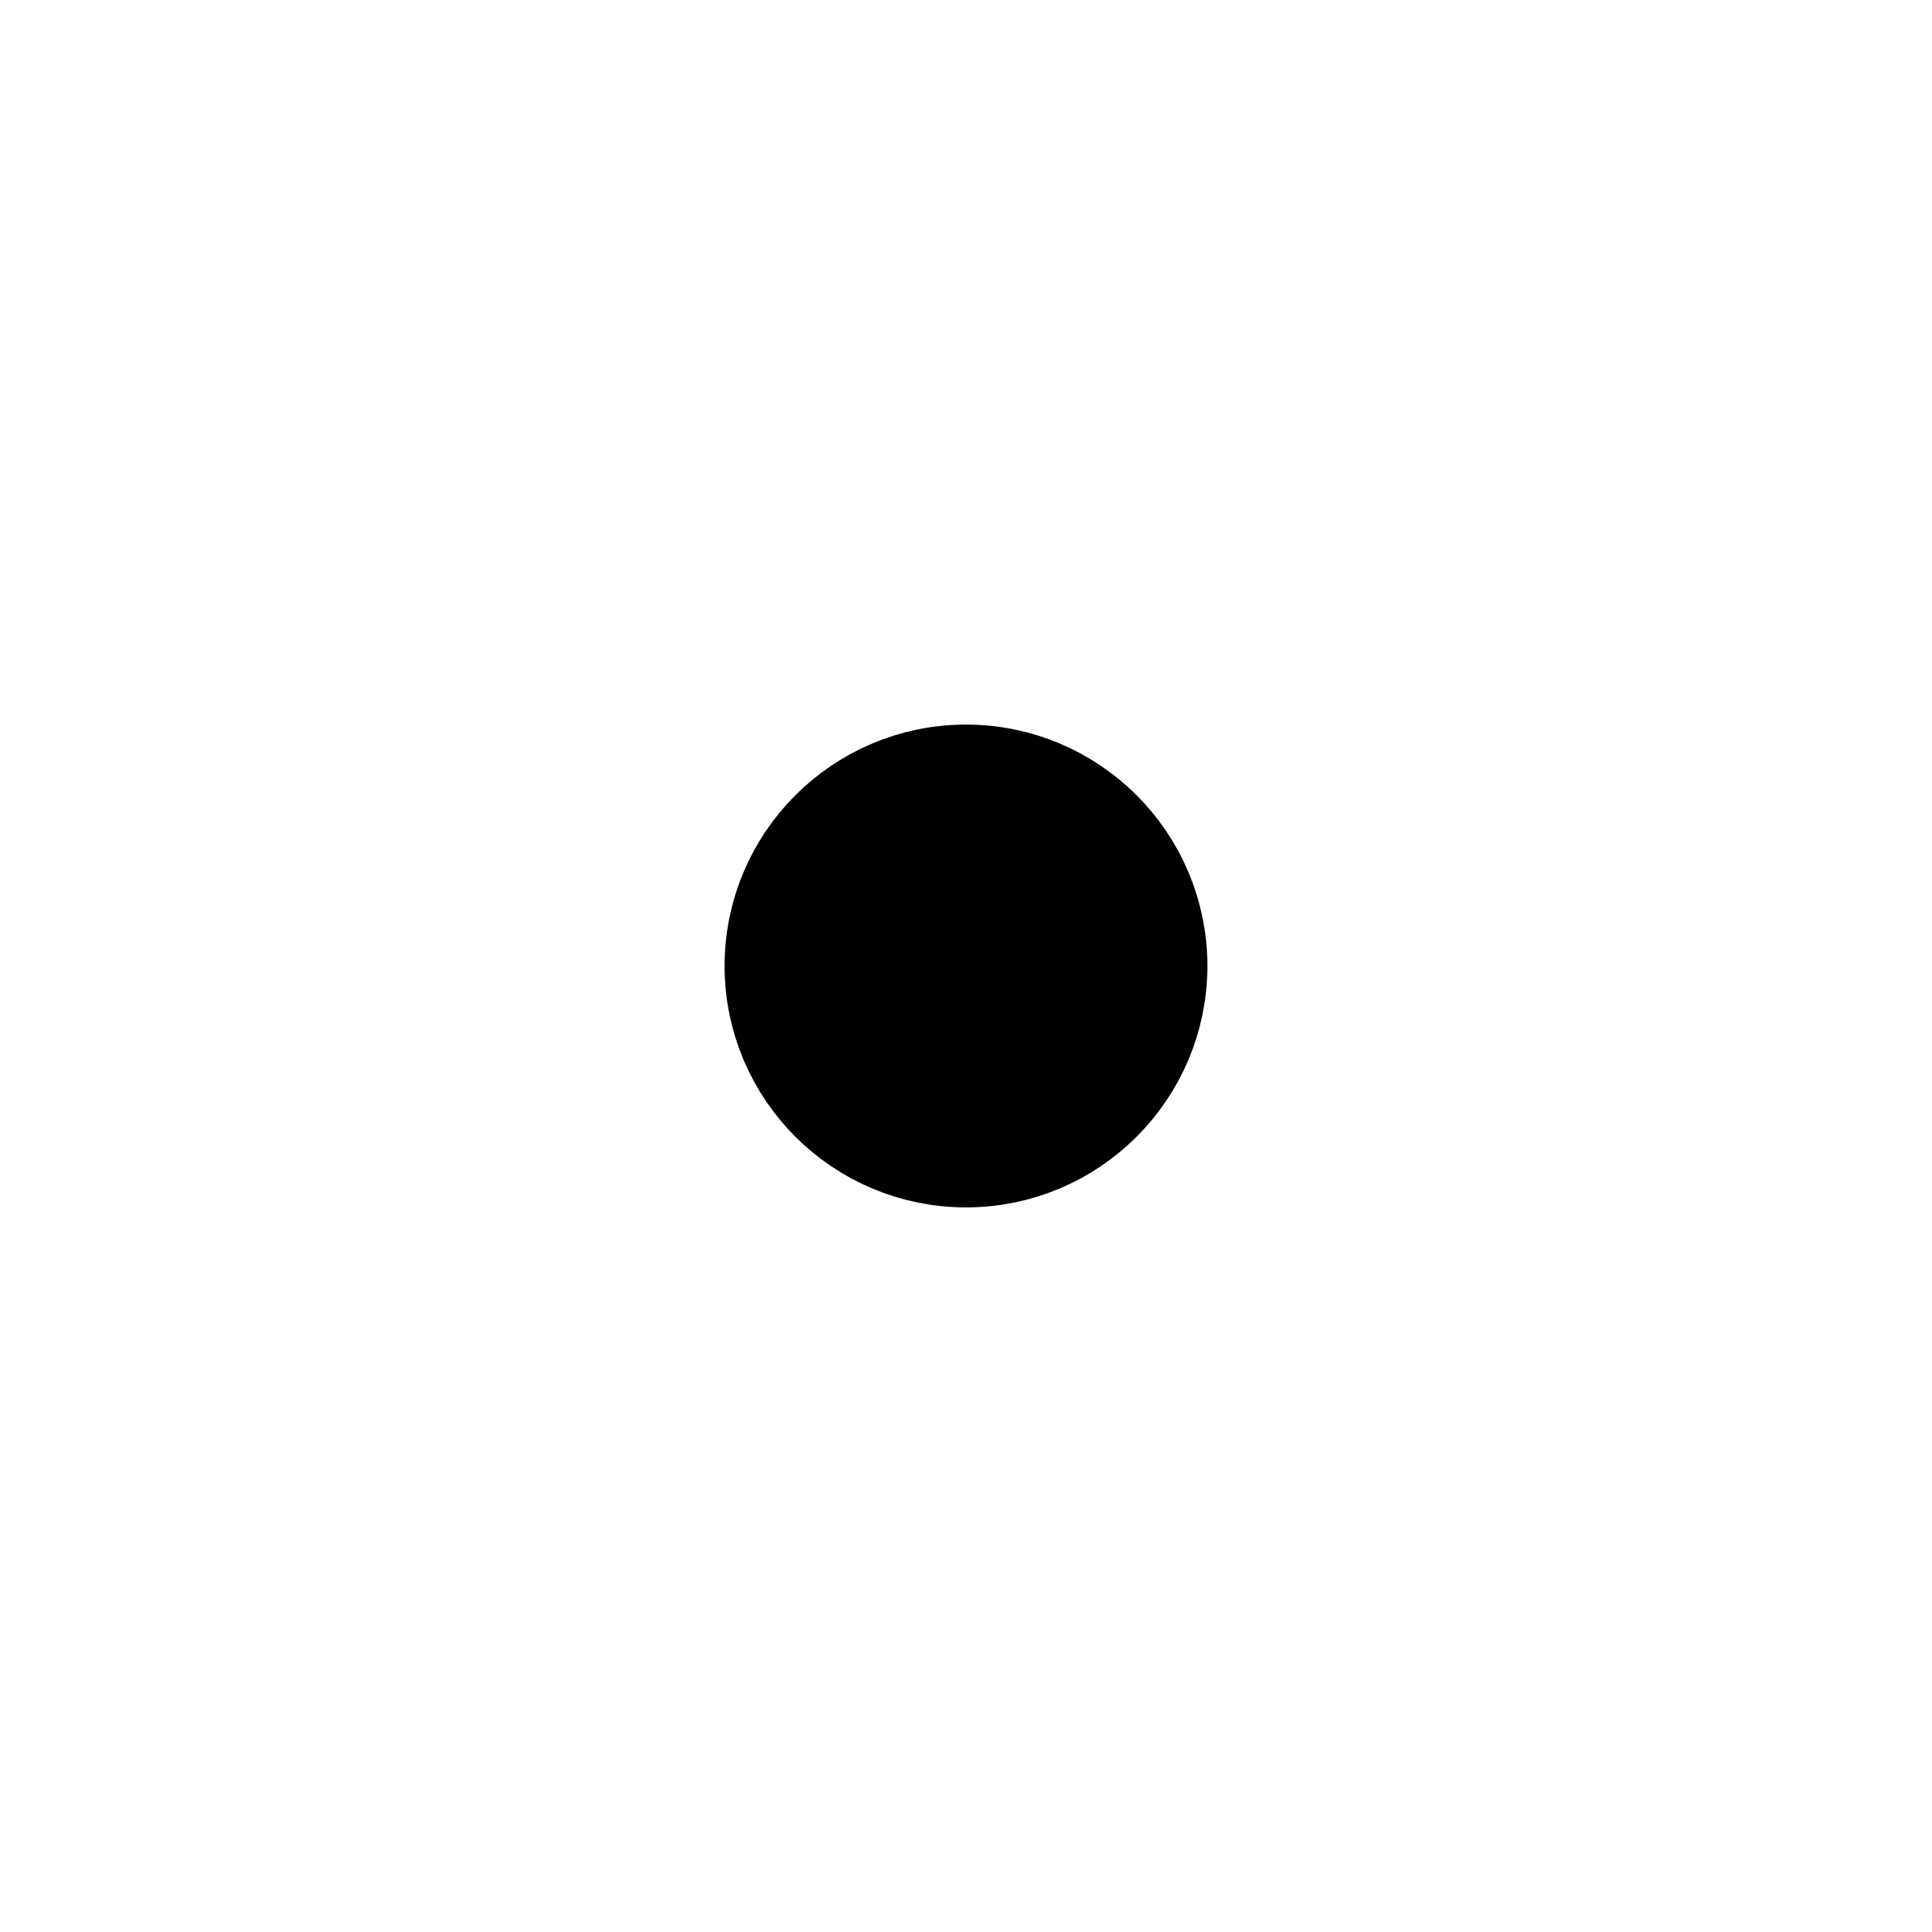 White dot png. Images free download